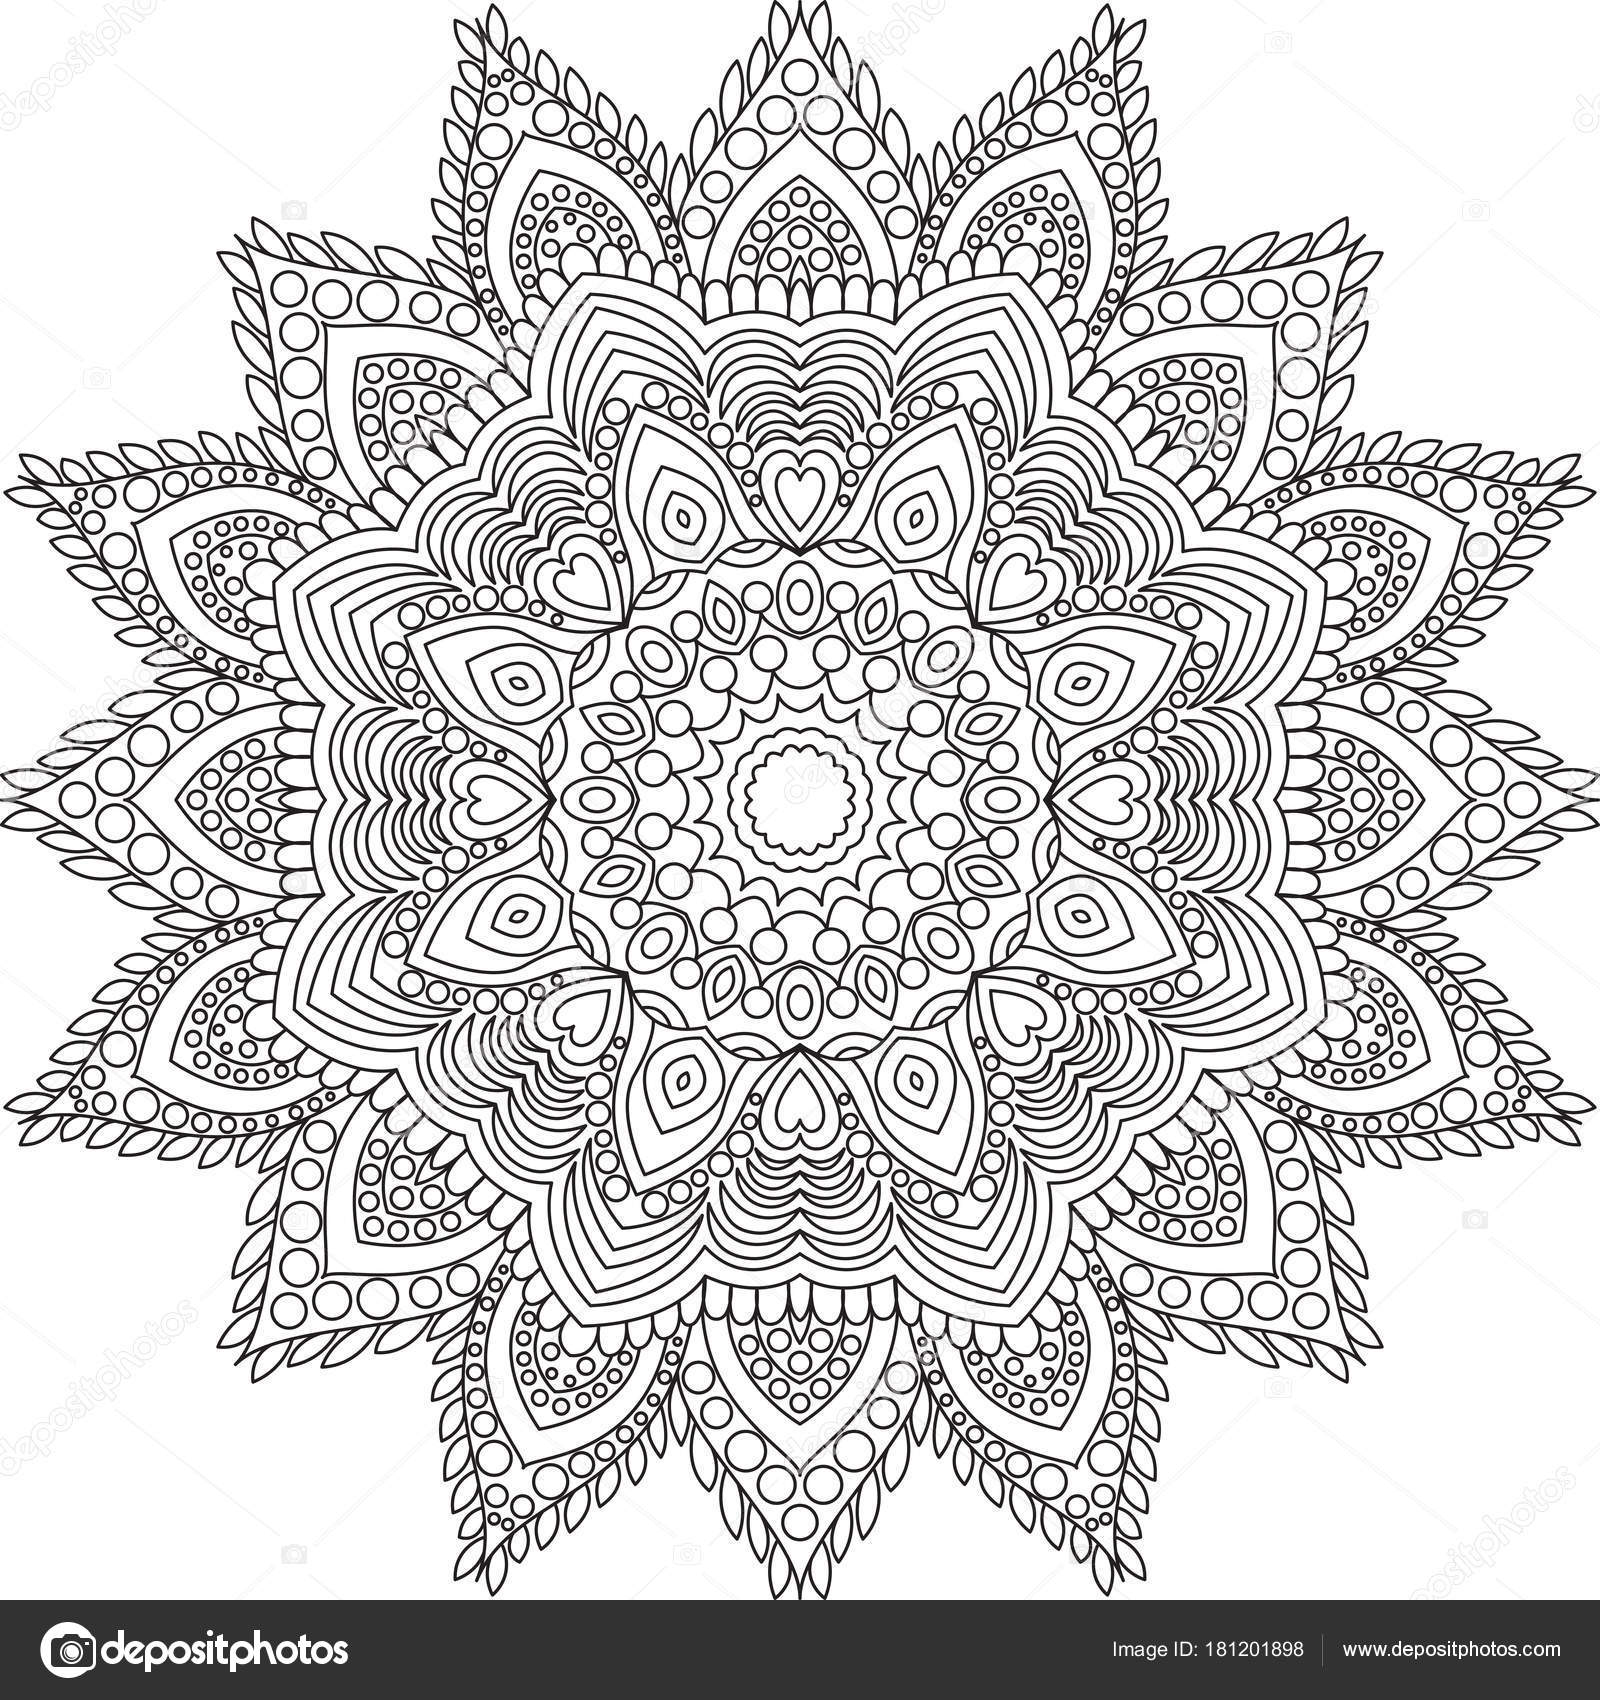 Outline Mandala Adult Coloring Book Page Decorative